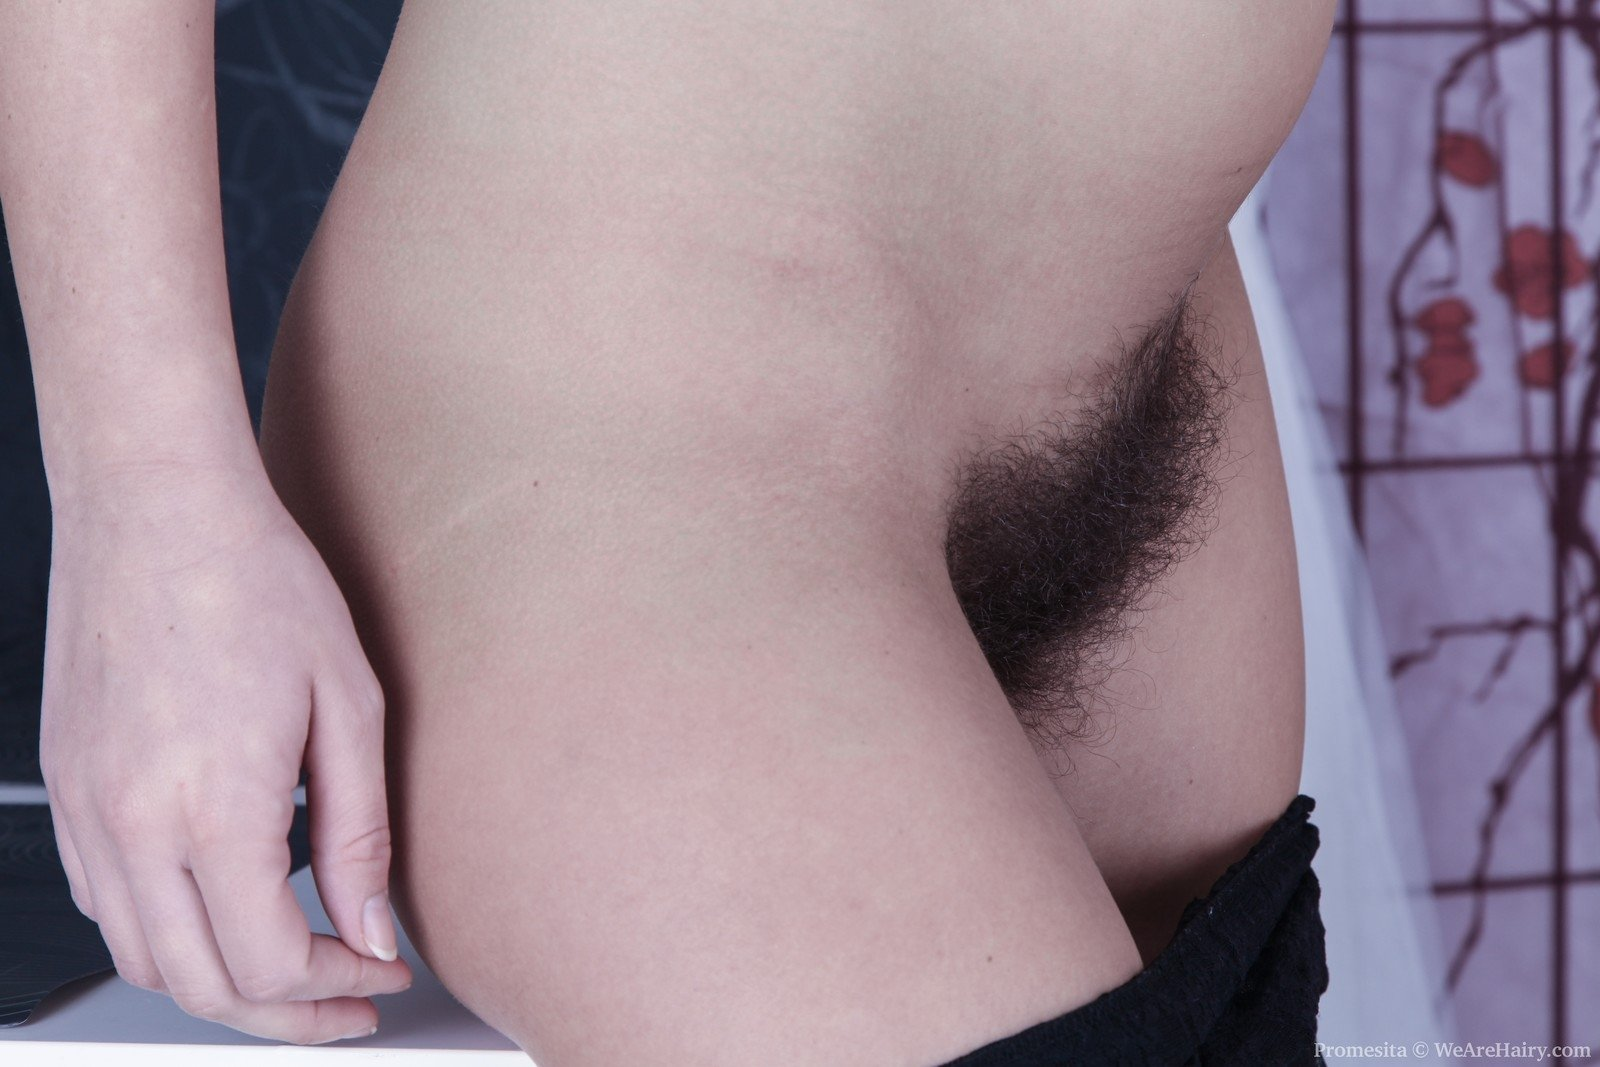 Obedient young wife sex porn Free sluts at home Naughty adult cartoon clips